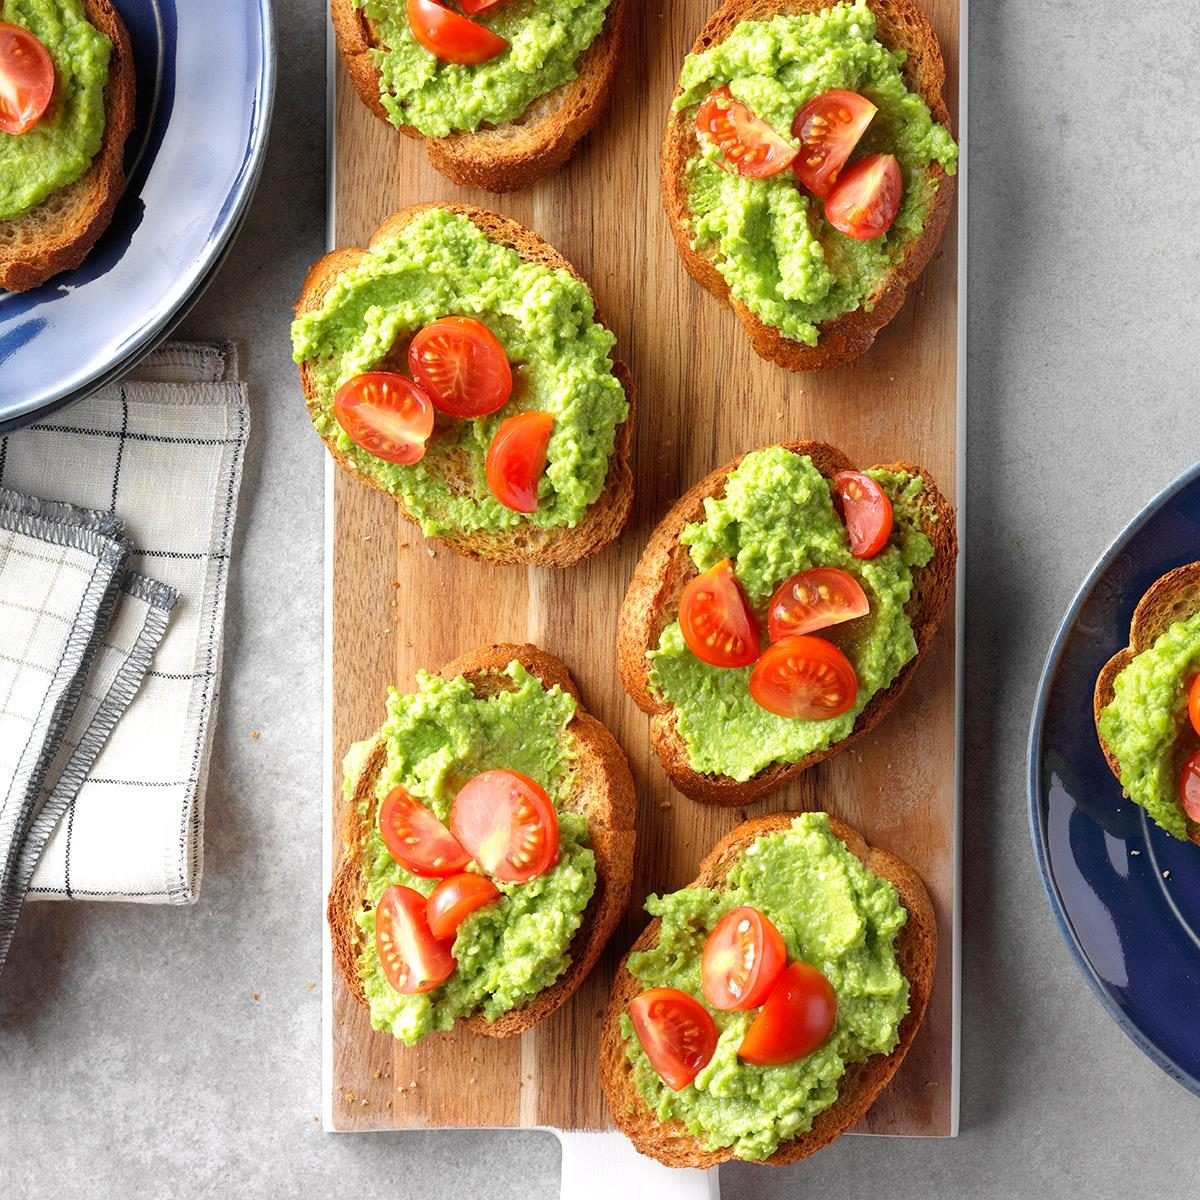 Wedding Snack Foods: 37 Healthy Appetizers That Keep You Coming Back For More